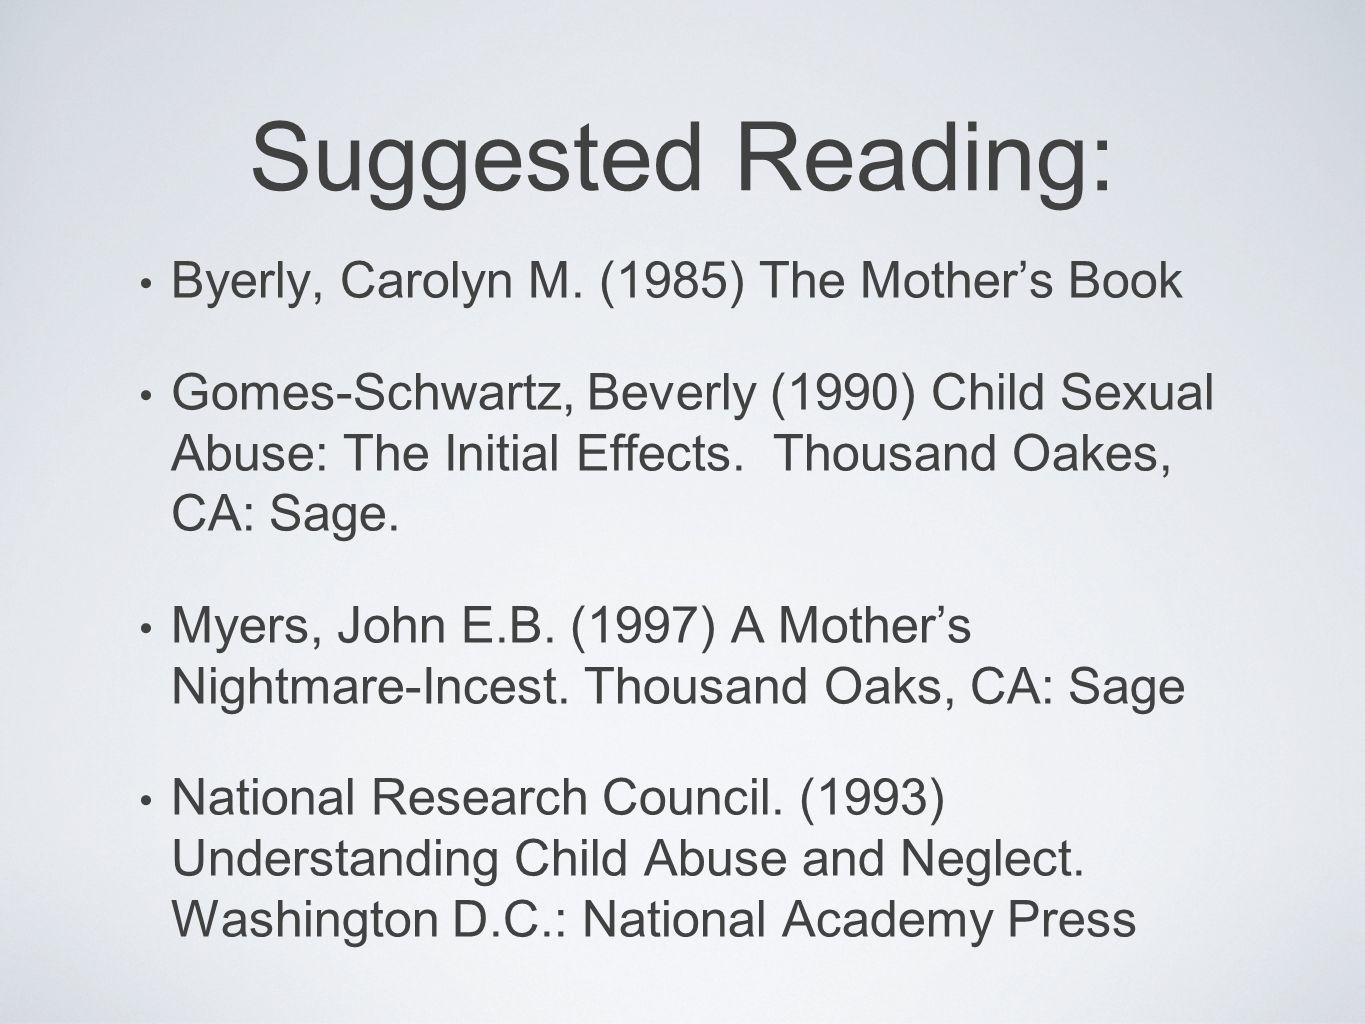 Suggested Reading: Byerly, Carolyn M. (1985) The Mother's Book